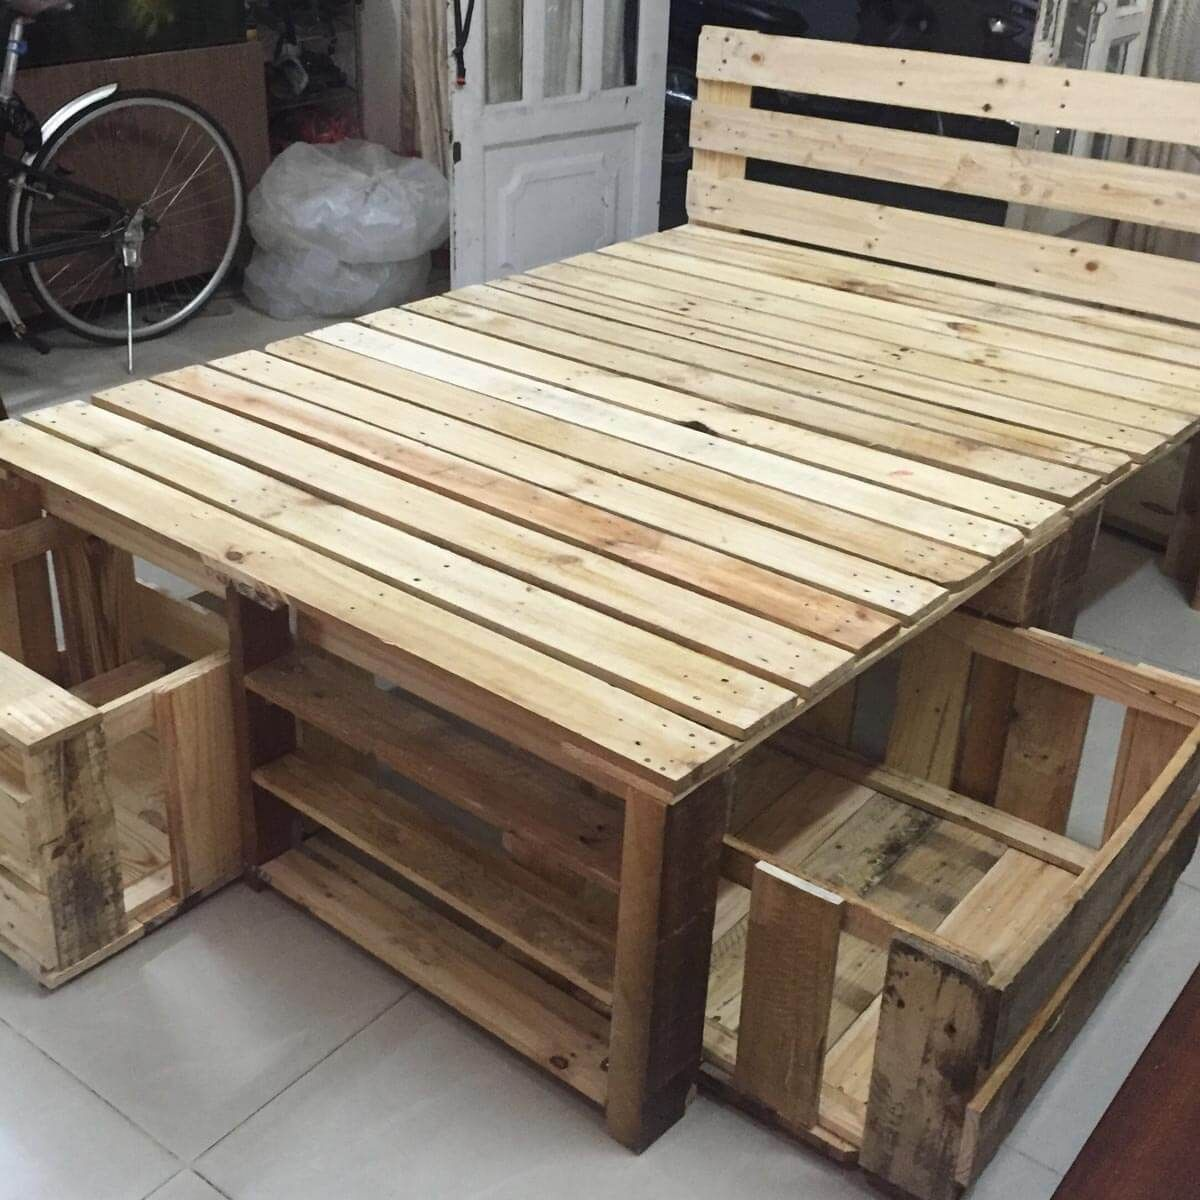 Pallet Bed Frame With Storage Pallet Furniture Bed Pallet Furniture Bedroom Pallet Bed Frames